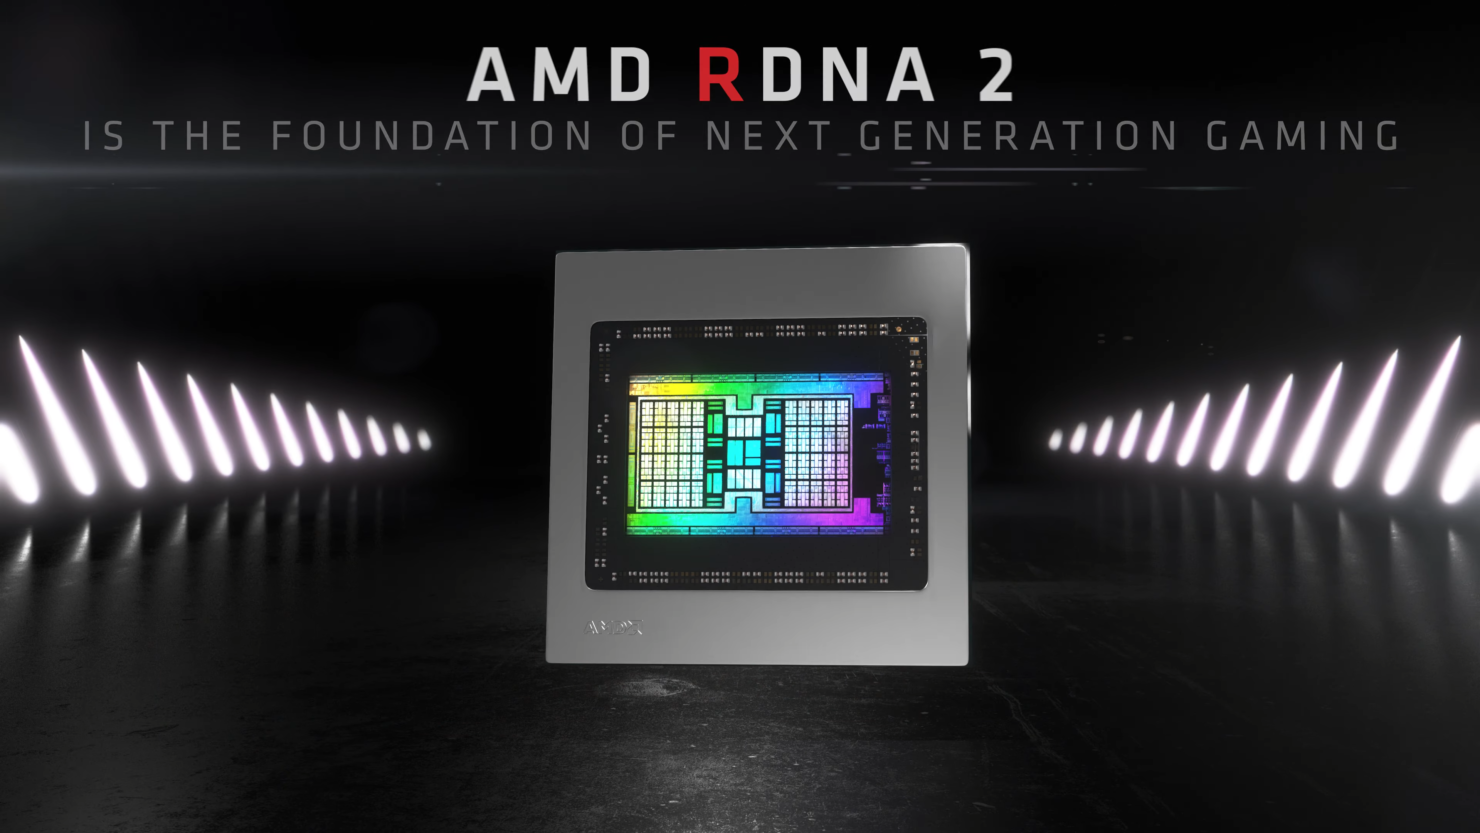 amd's-fidelityfx-super-resolution-allegedly-launching-in-spring-to-tackle-nvidia's-dlss,-radeon-boost-also-receiving-update